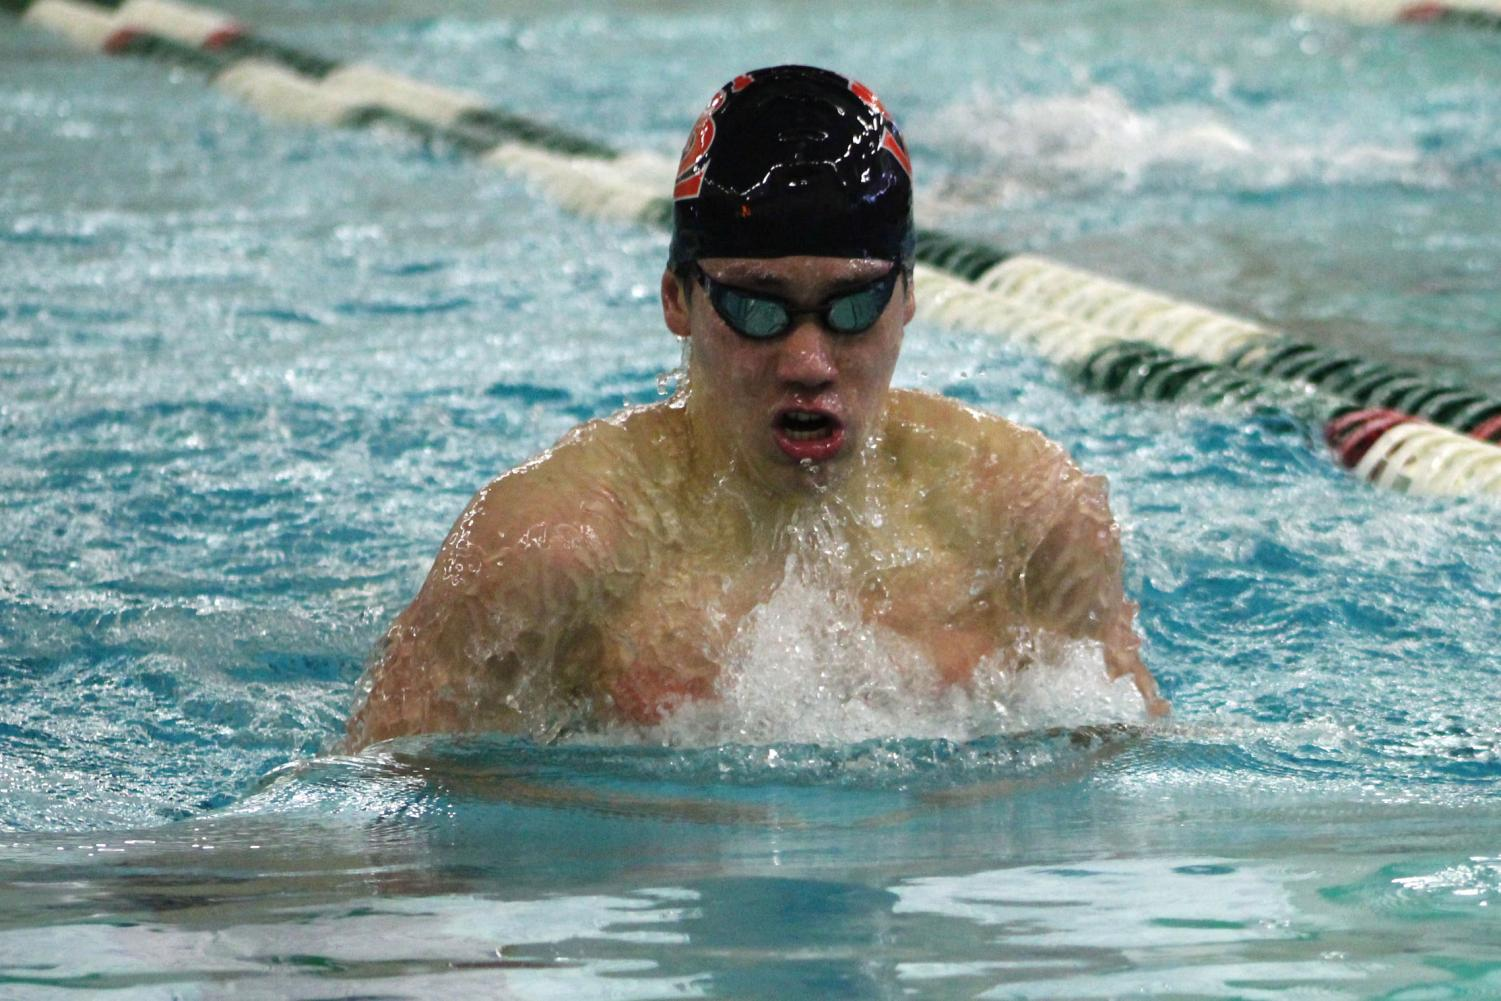 Sophomore+Hayden+Zheng+races+in+a+breaststroke+before+competing+in+several+other+events+at+the+section+meet.+Hayden+is+one+of+four+Park+swimmers+who+qualified+for+the+State+meet.